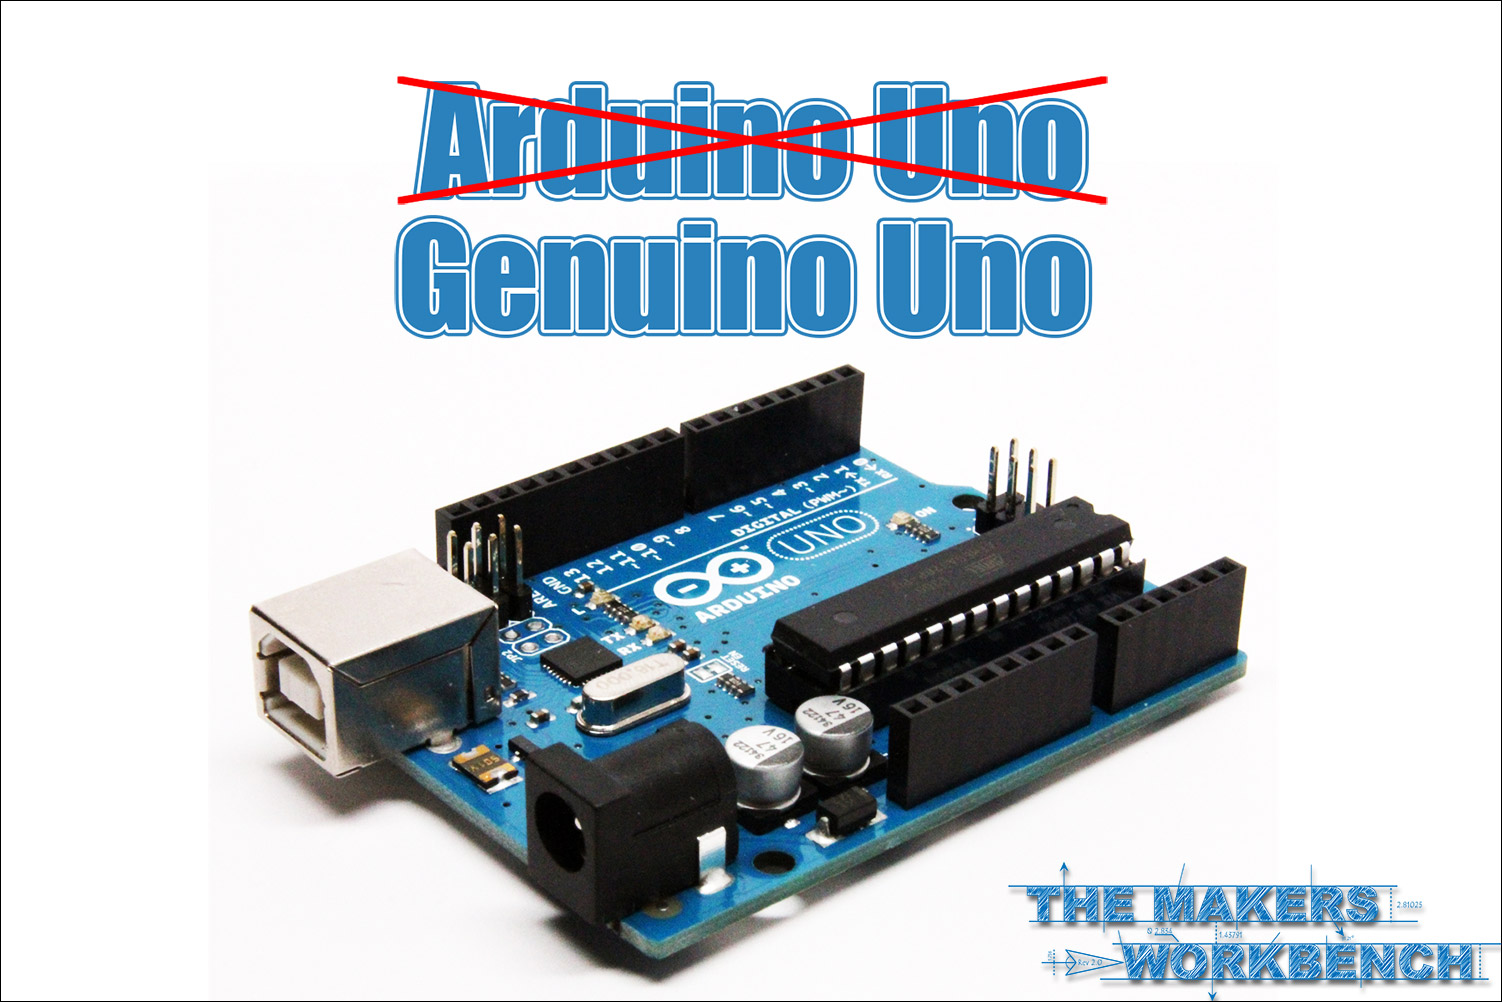 Arduino.cc and Adafruit rebrand Arduino into Genuino admist legal issues.